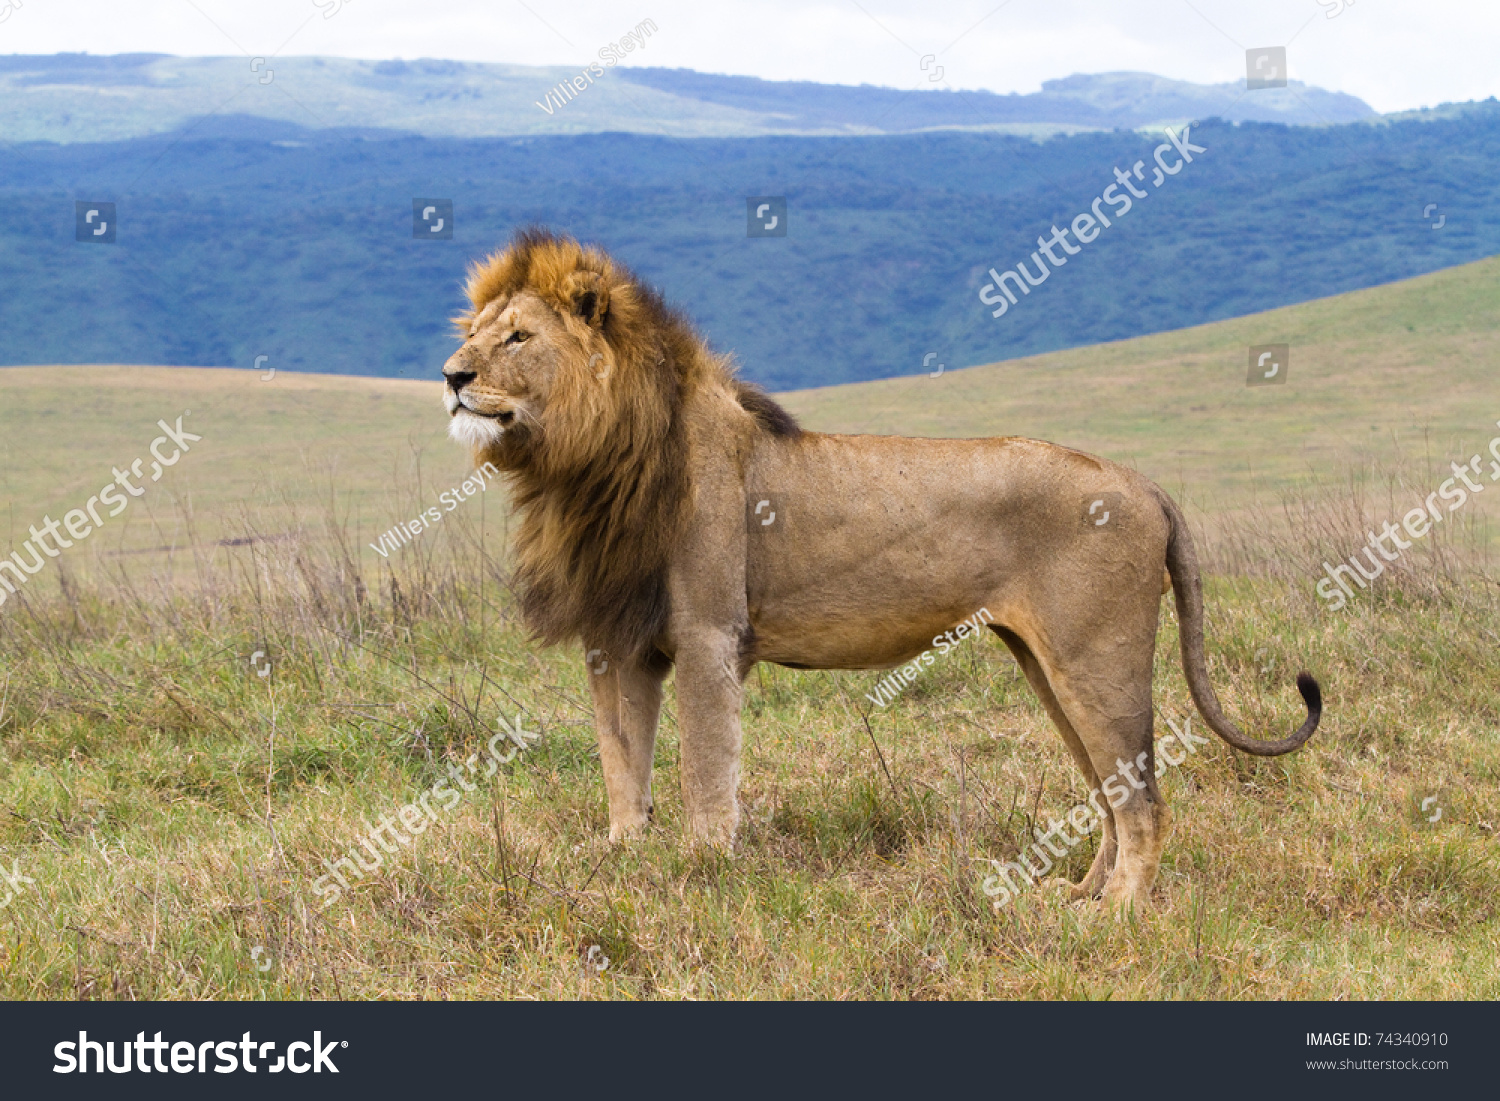 BOA_0075 - male lion standing - Photograph at ...